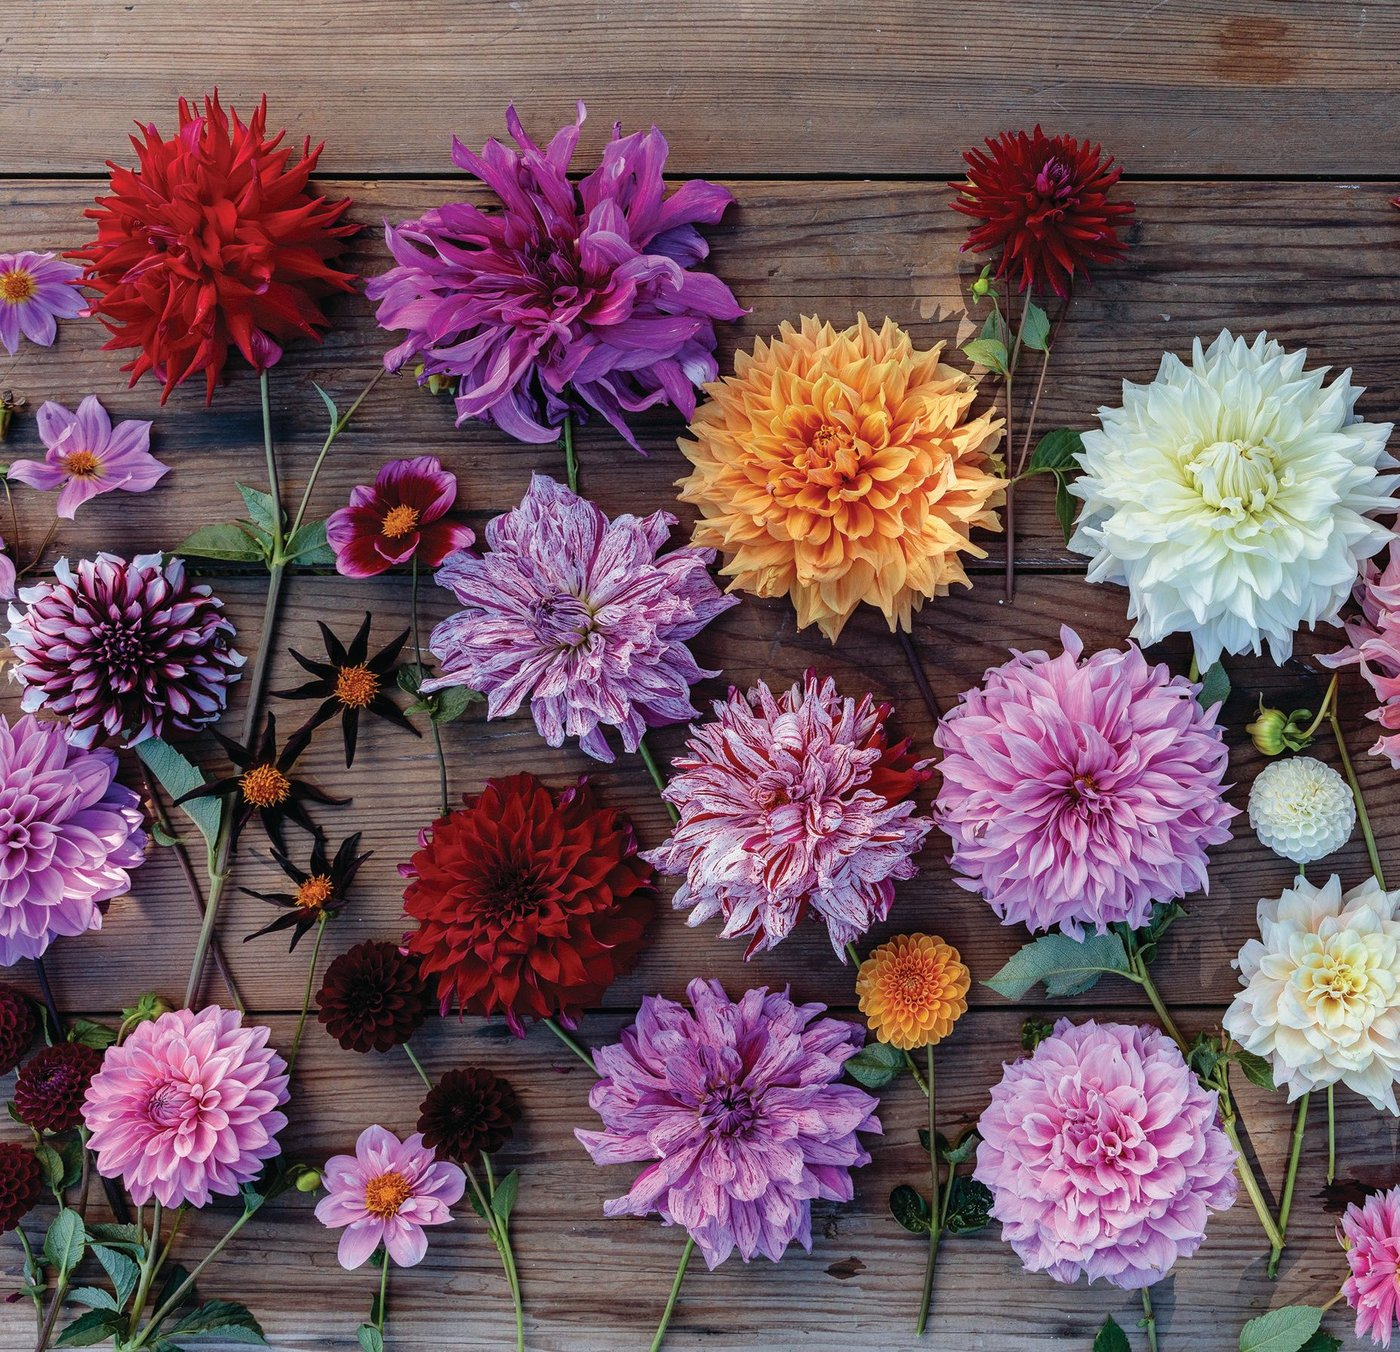 A stunning showcase of dahlias from the garden of Christopher Spitzmiller as seen in his new tome, A Year at Clove Brook Farm (Rizzoli) PHOTO BY GEMMA AND ANDREW INGALLS